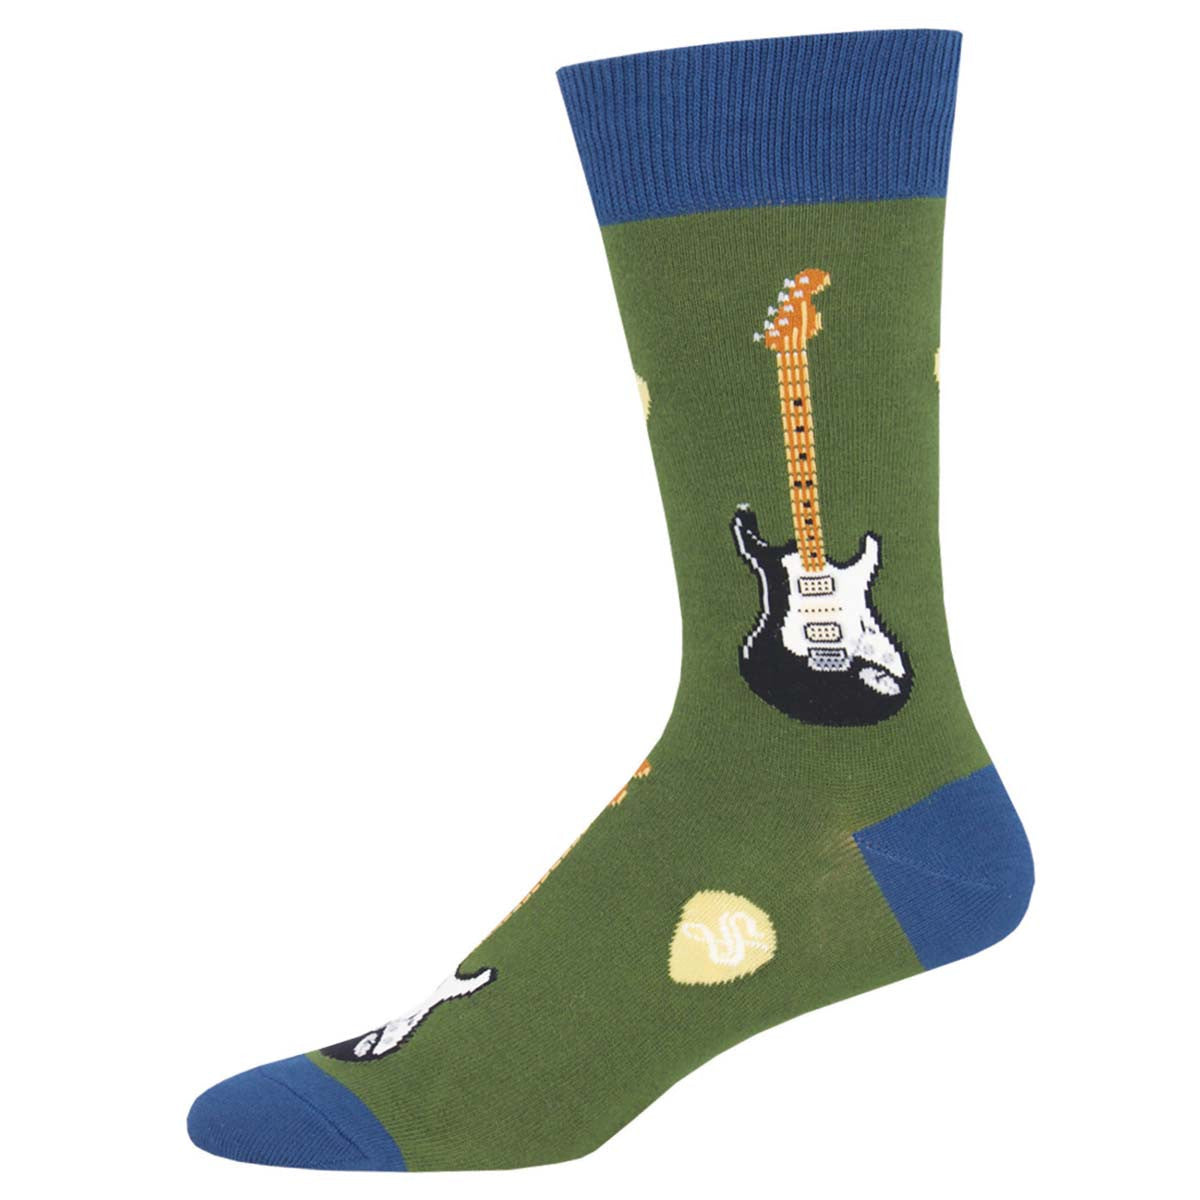 Men's Socks, Electric Guitars, Green